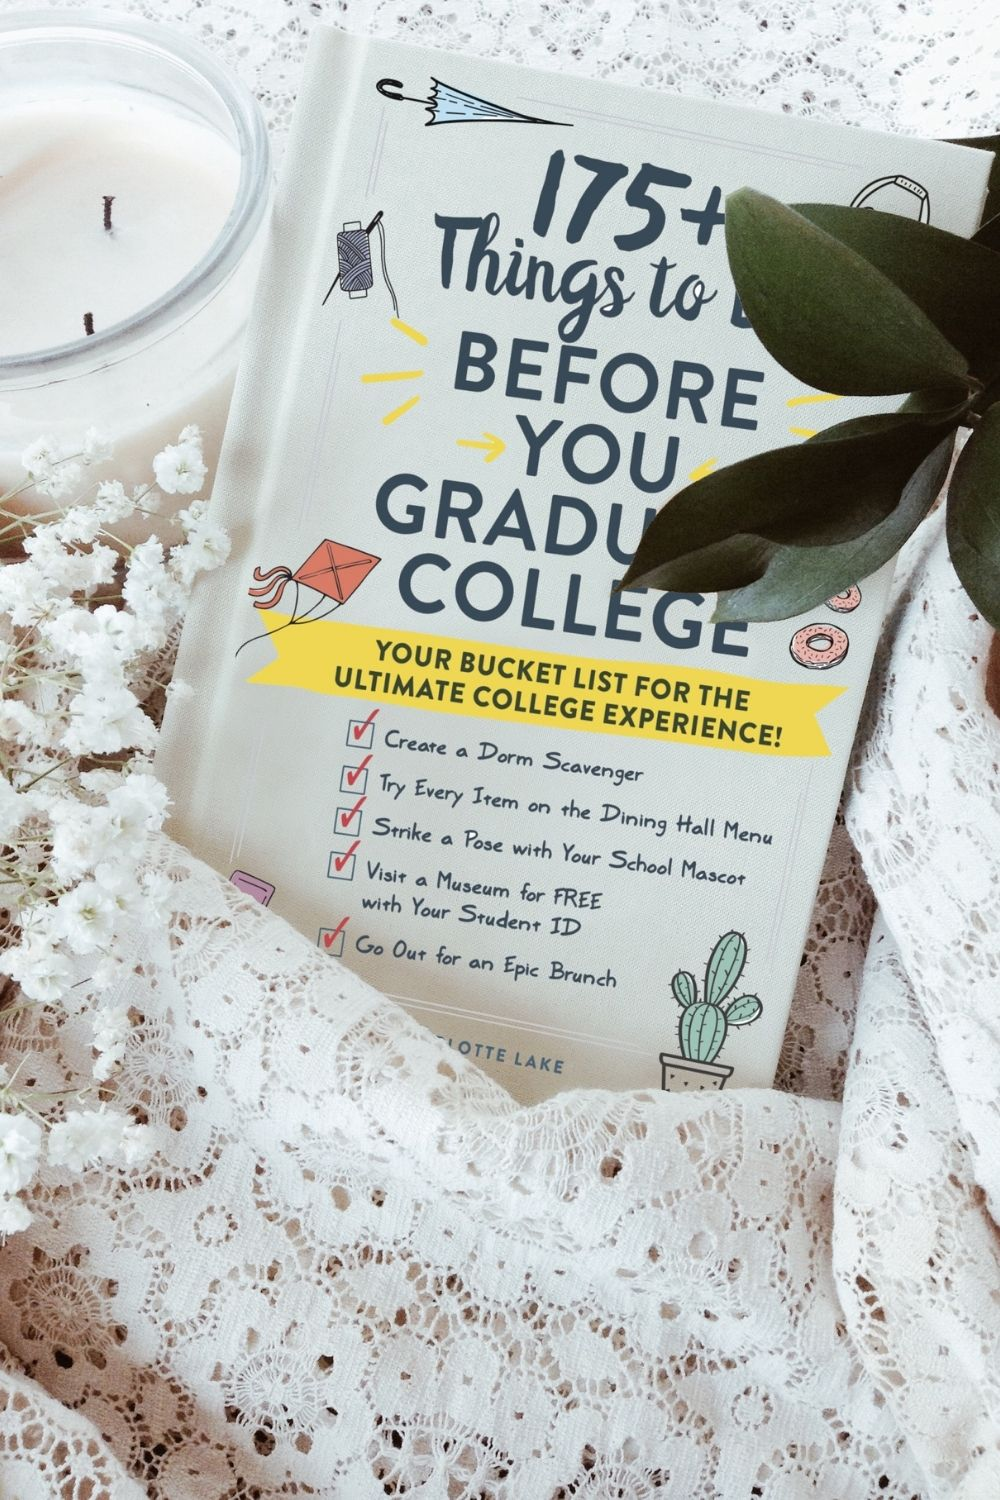 white college bucket list ideas book next to lacey fabric, a candle, and a plant